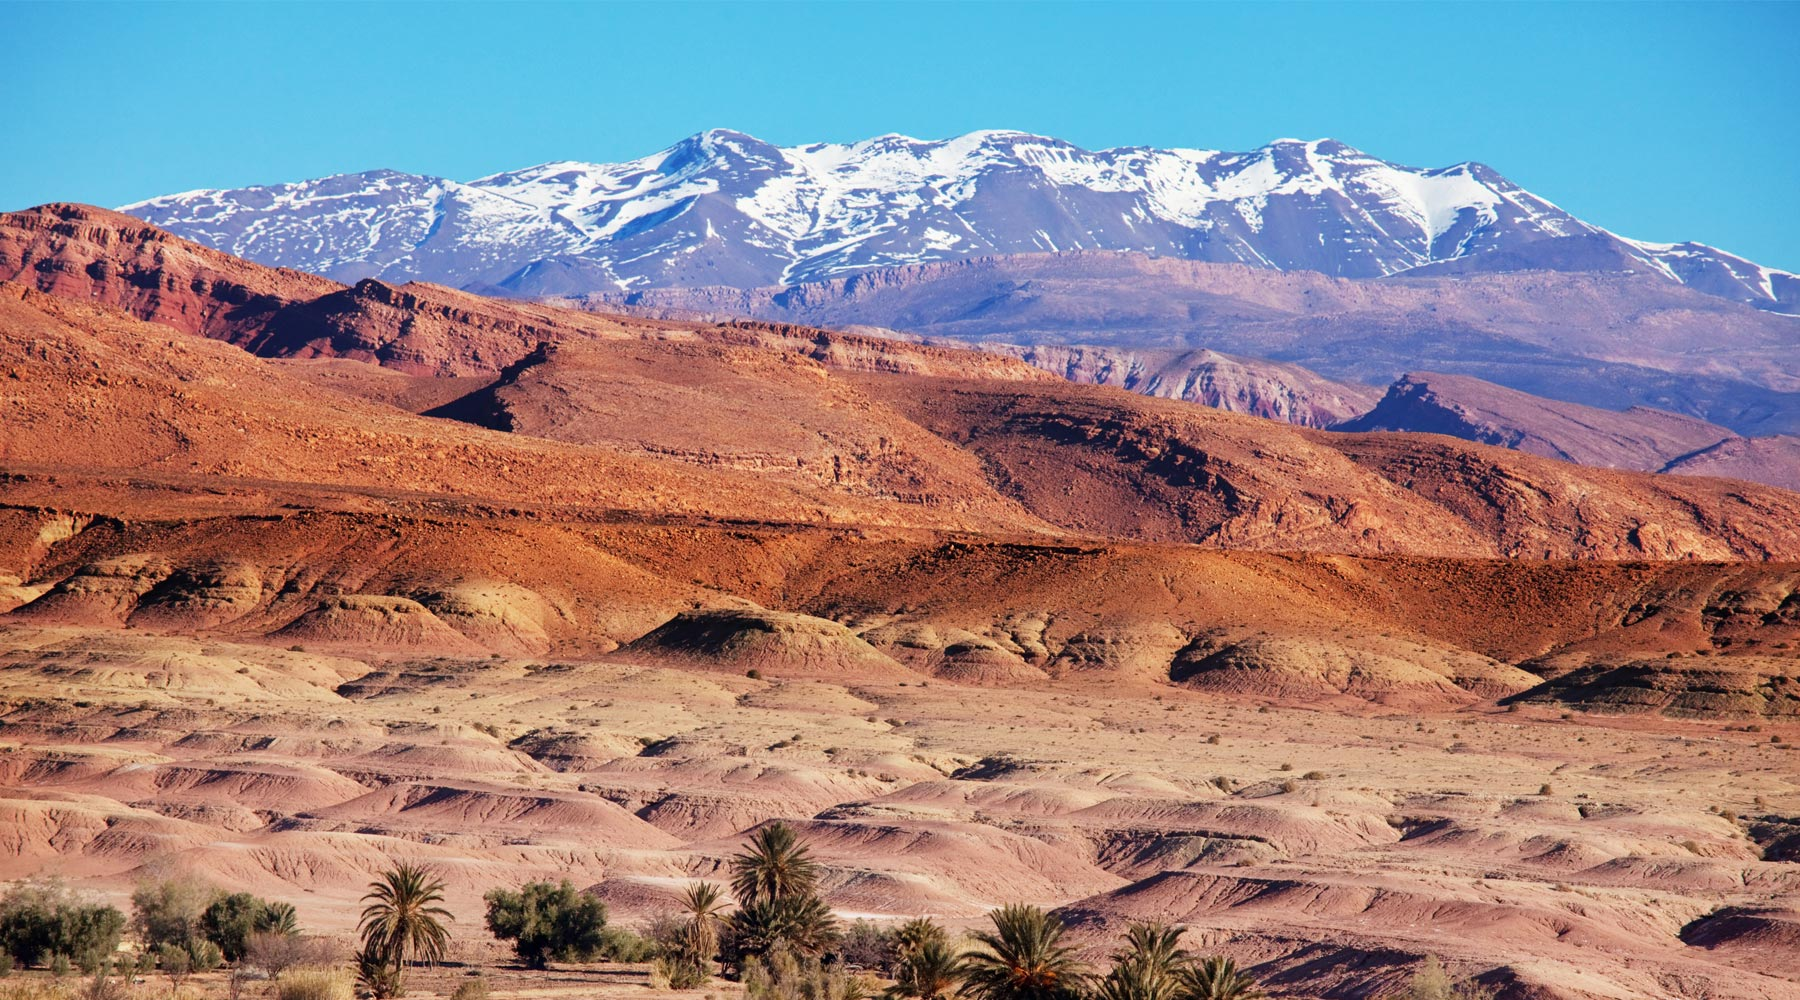 Atlas Mountains – Stunning Mountain Range in Morocco